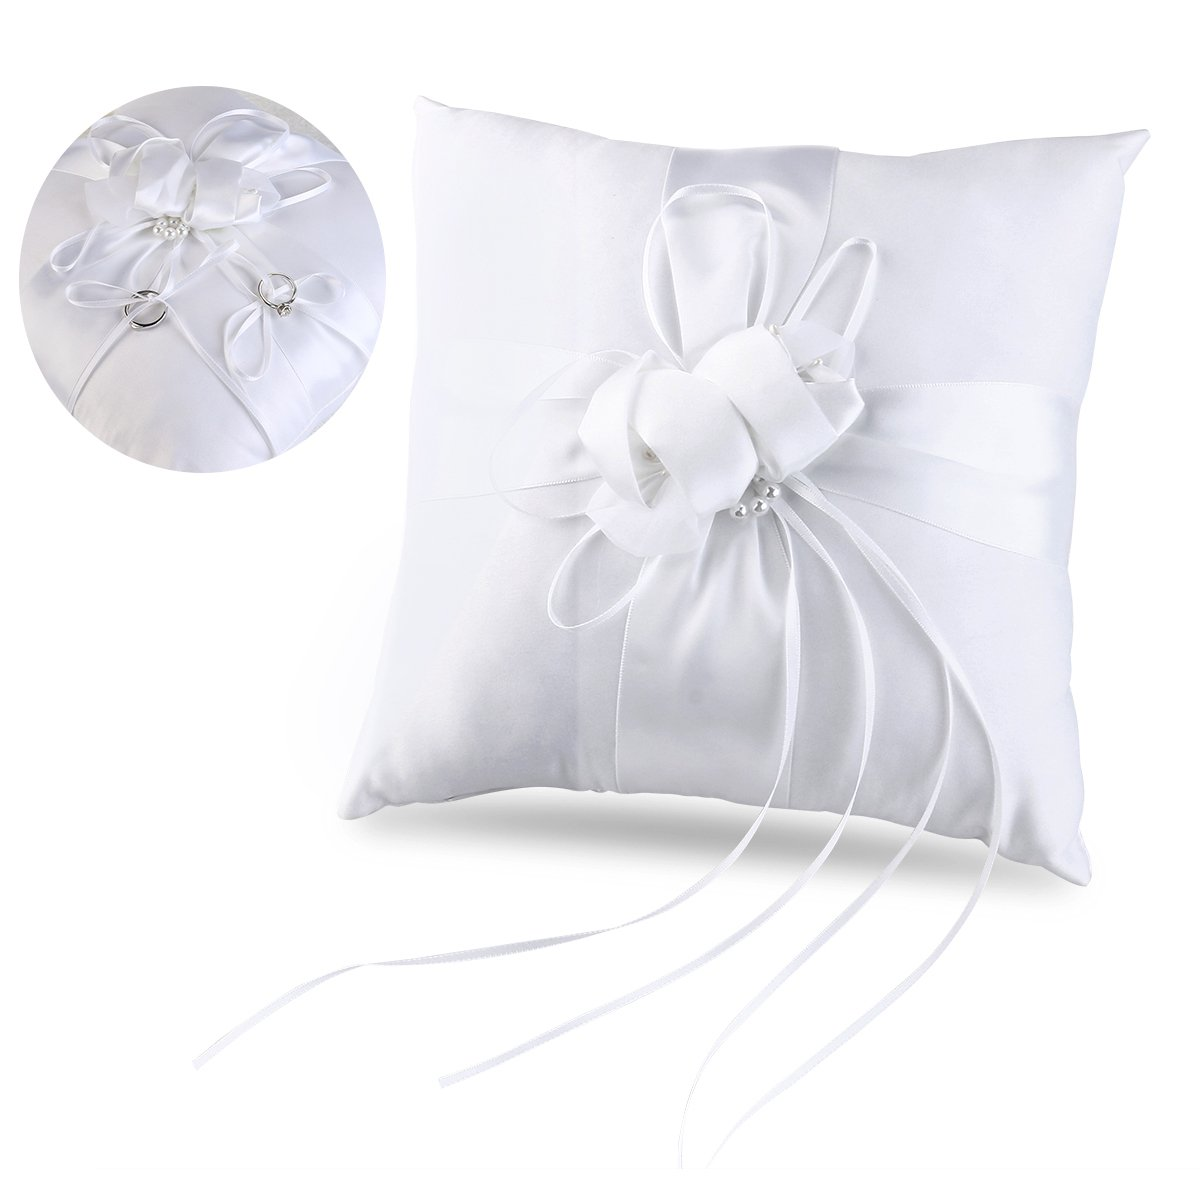 Tinksky Ring Bearer Pillow Flower Buds Faux Pearls Decor Wedding Ring Pillow with Ribbons 10 Inch10 Inch (Pure White)